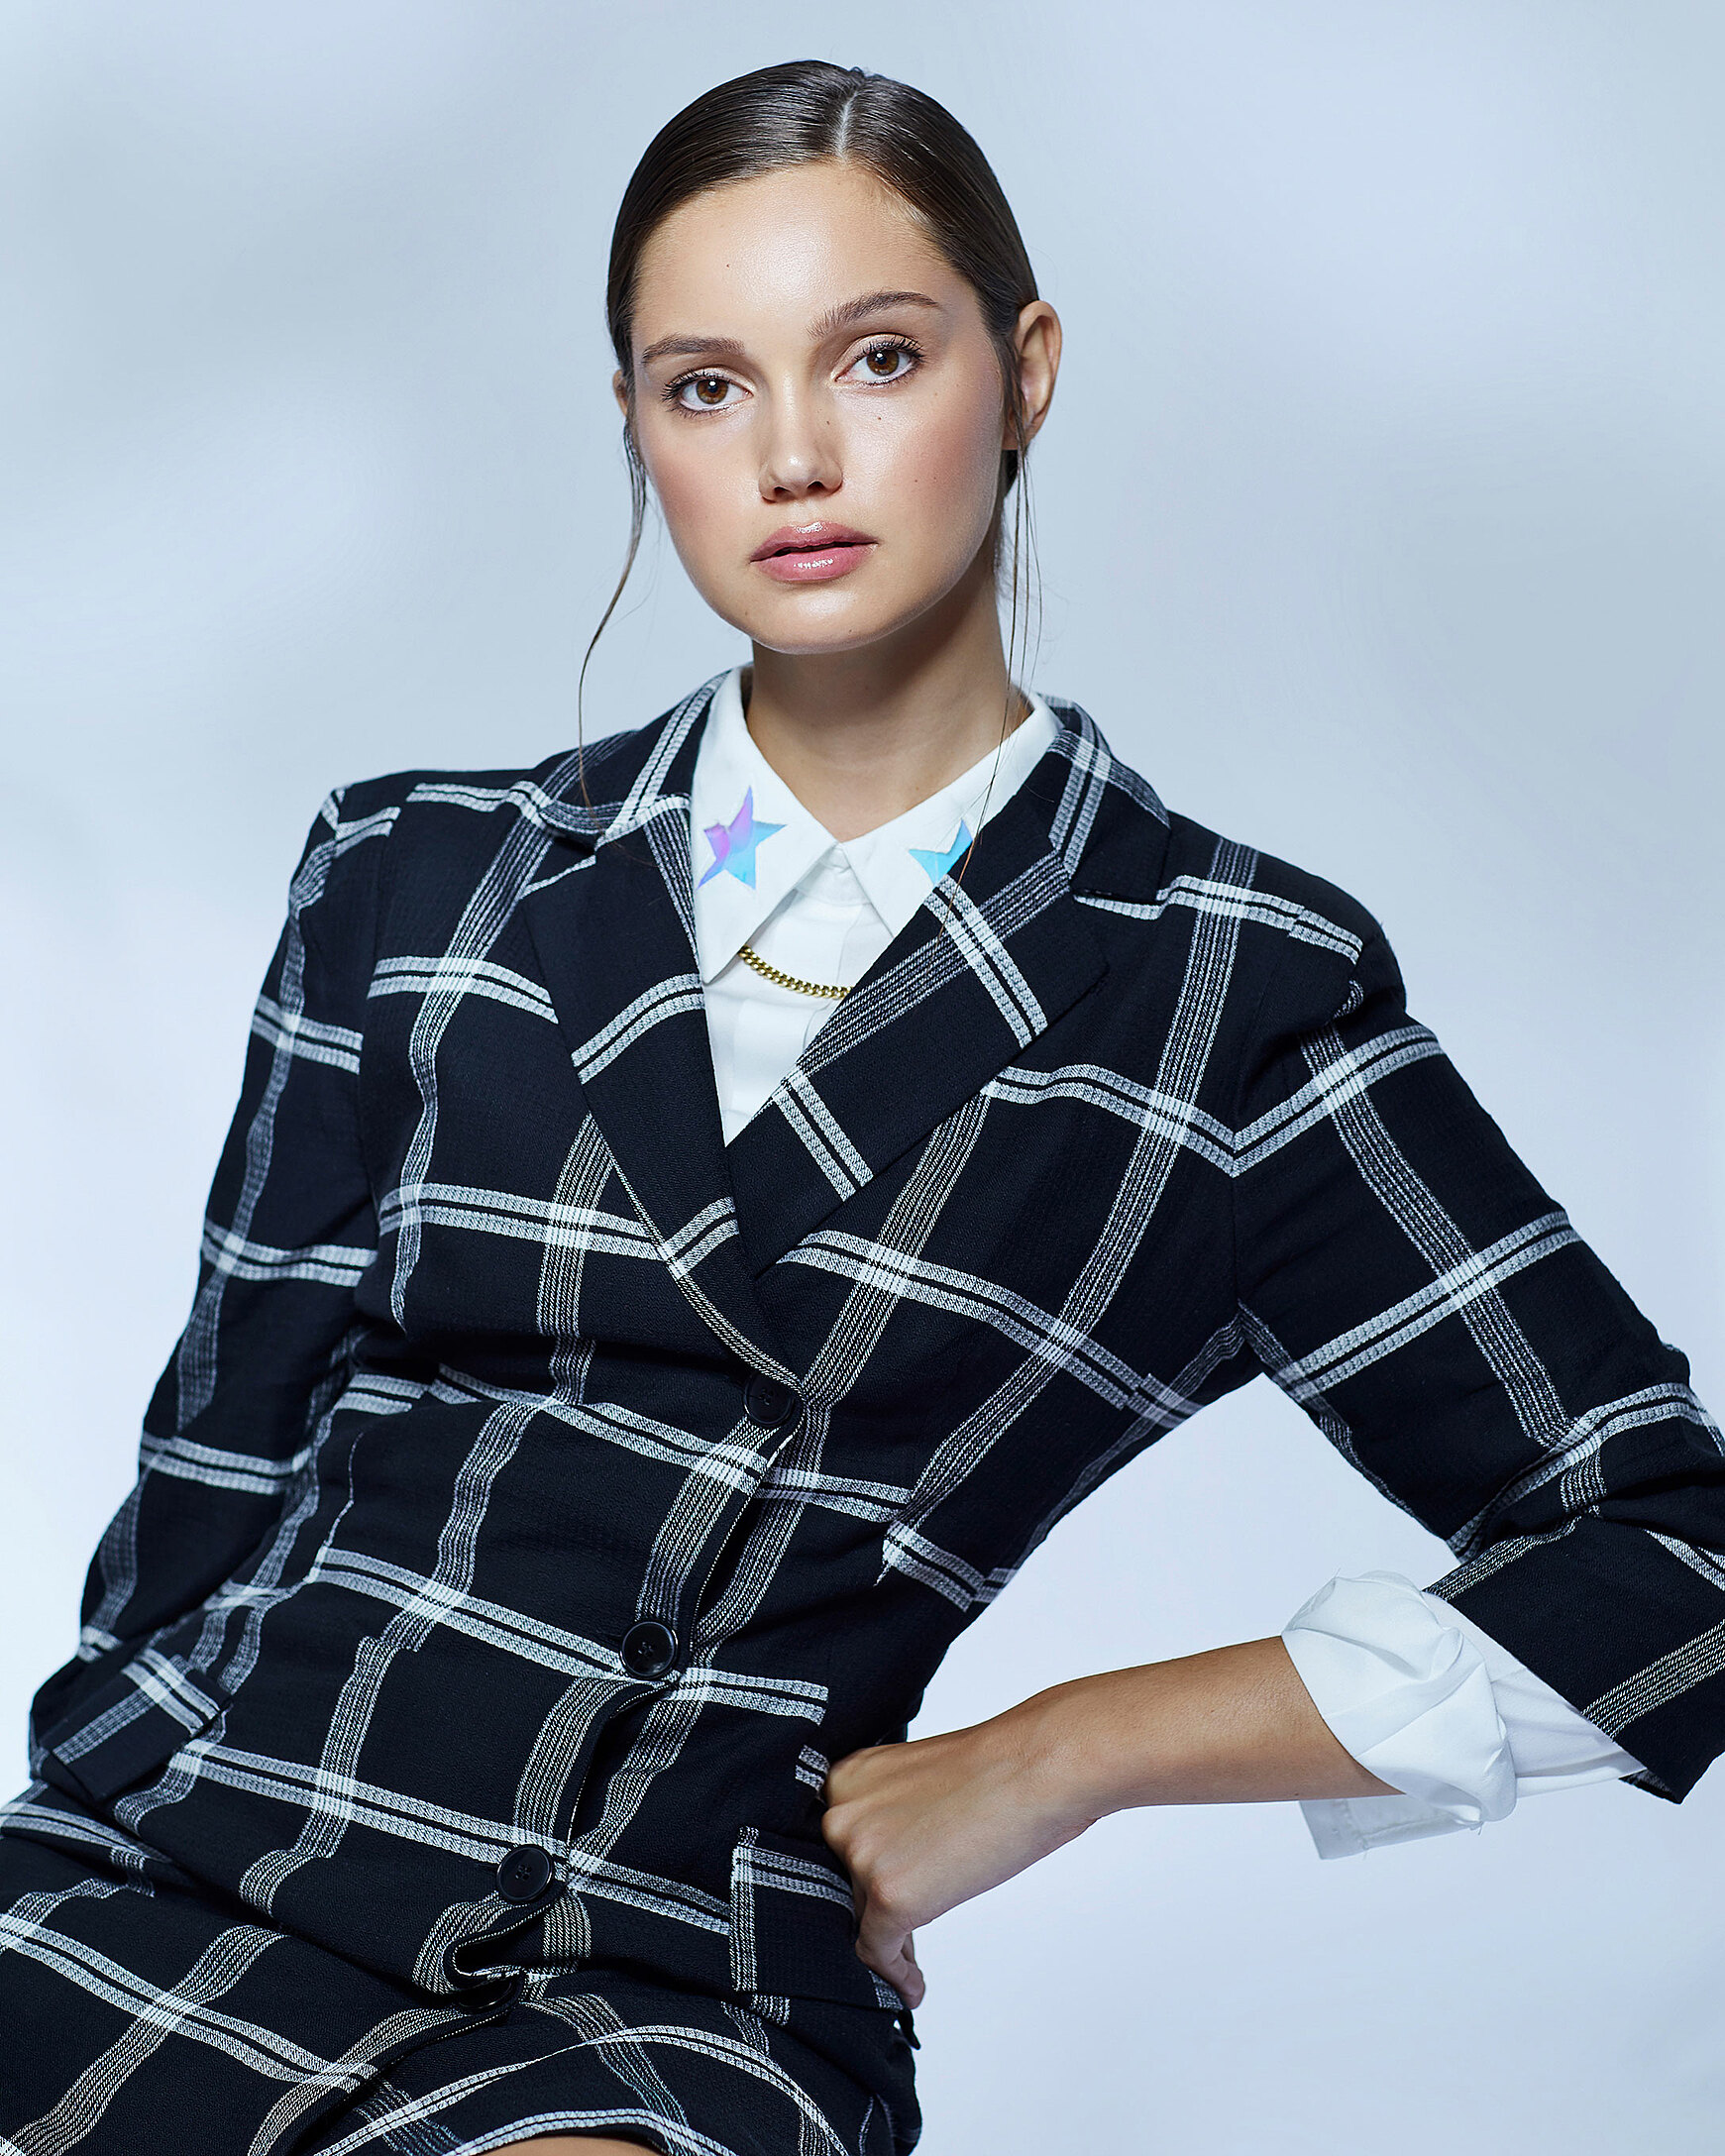 A female model who wears a checked blazer with a white blouse with blue stars on the chocker and sleek brown hair. She looks direct with a strong view into the camera.